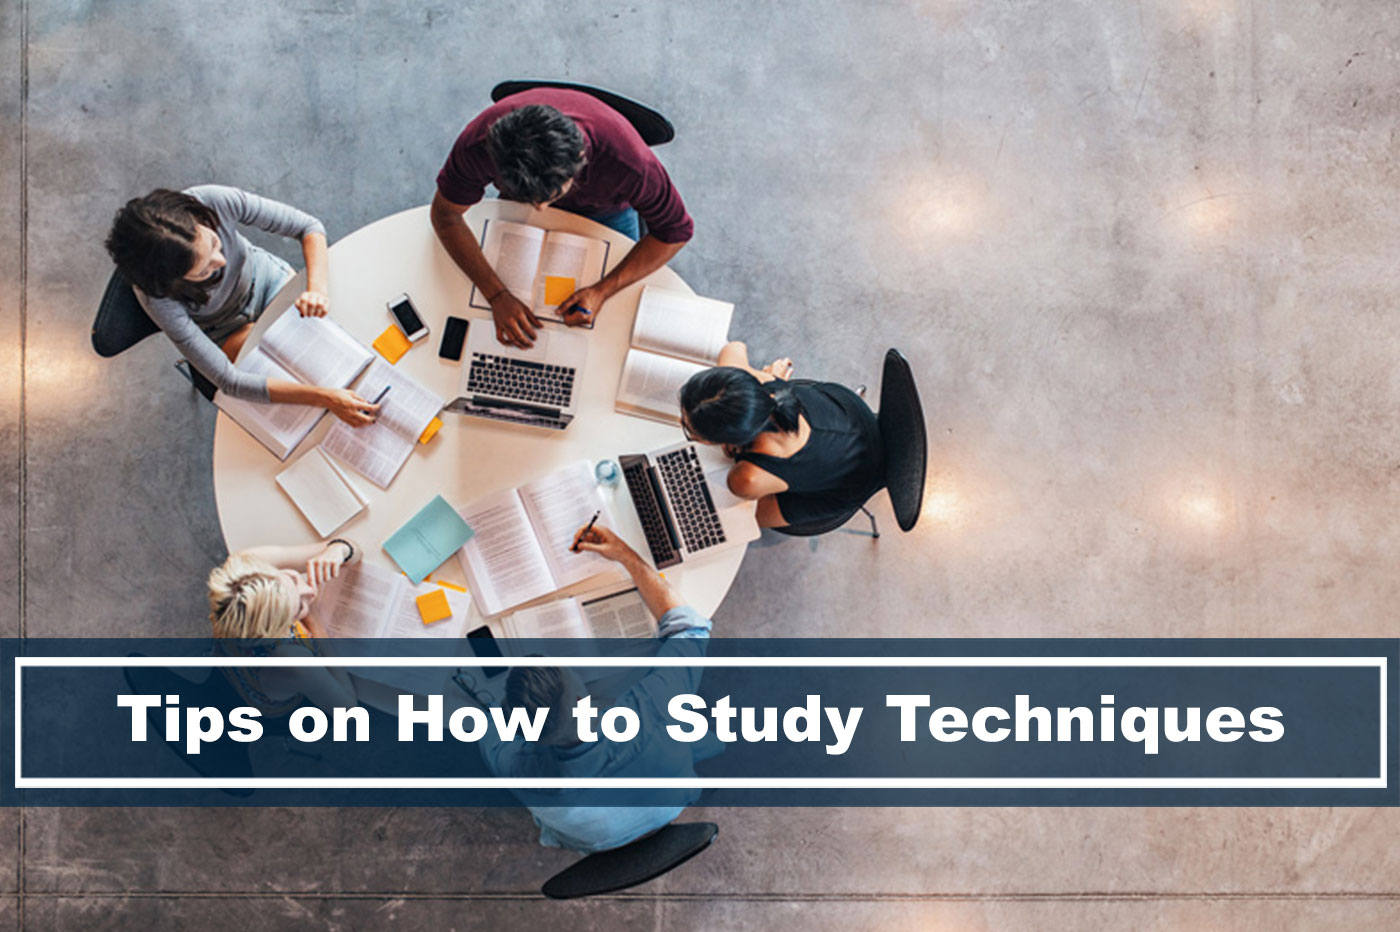 bet tips on how to study techniques